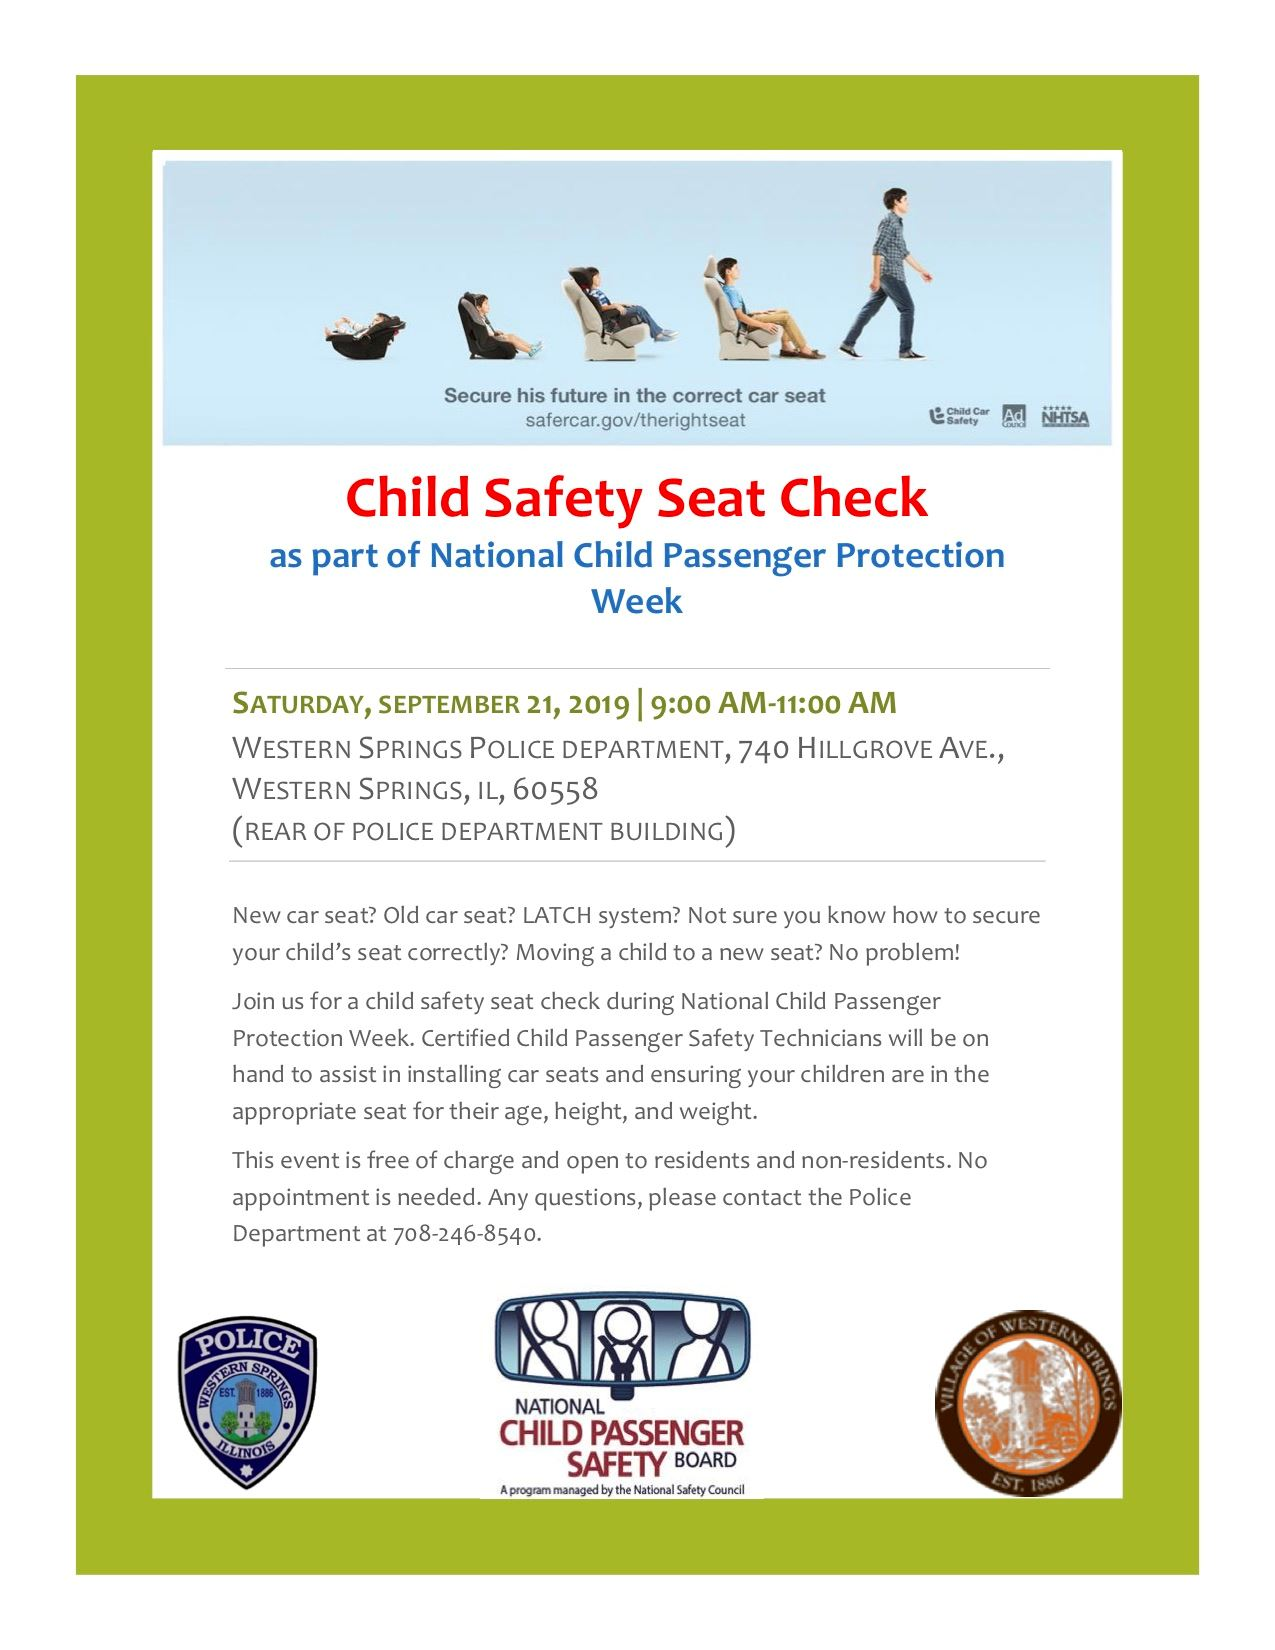 Child Safety Seat Check Flyer copy